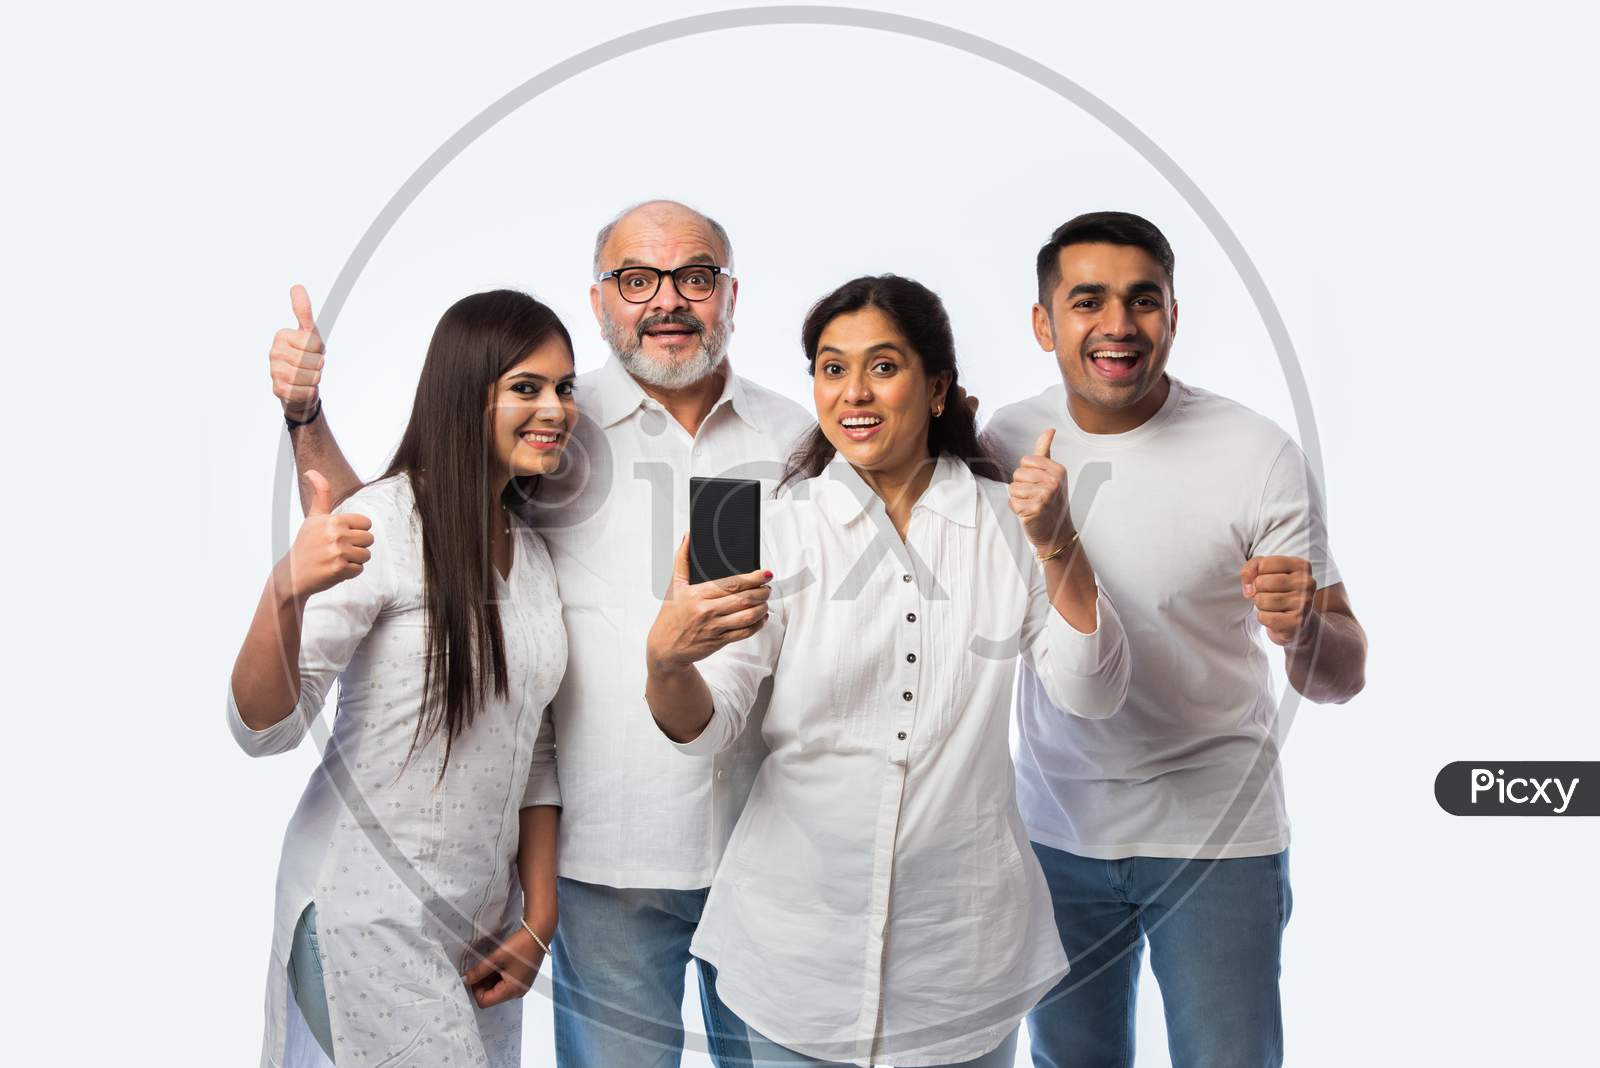 Indian Family Using Smartphone, Includes Young Couple And Senior Adults